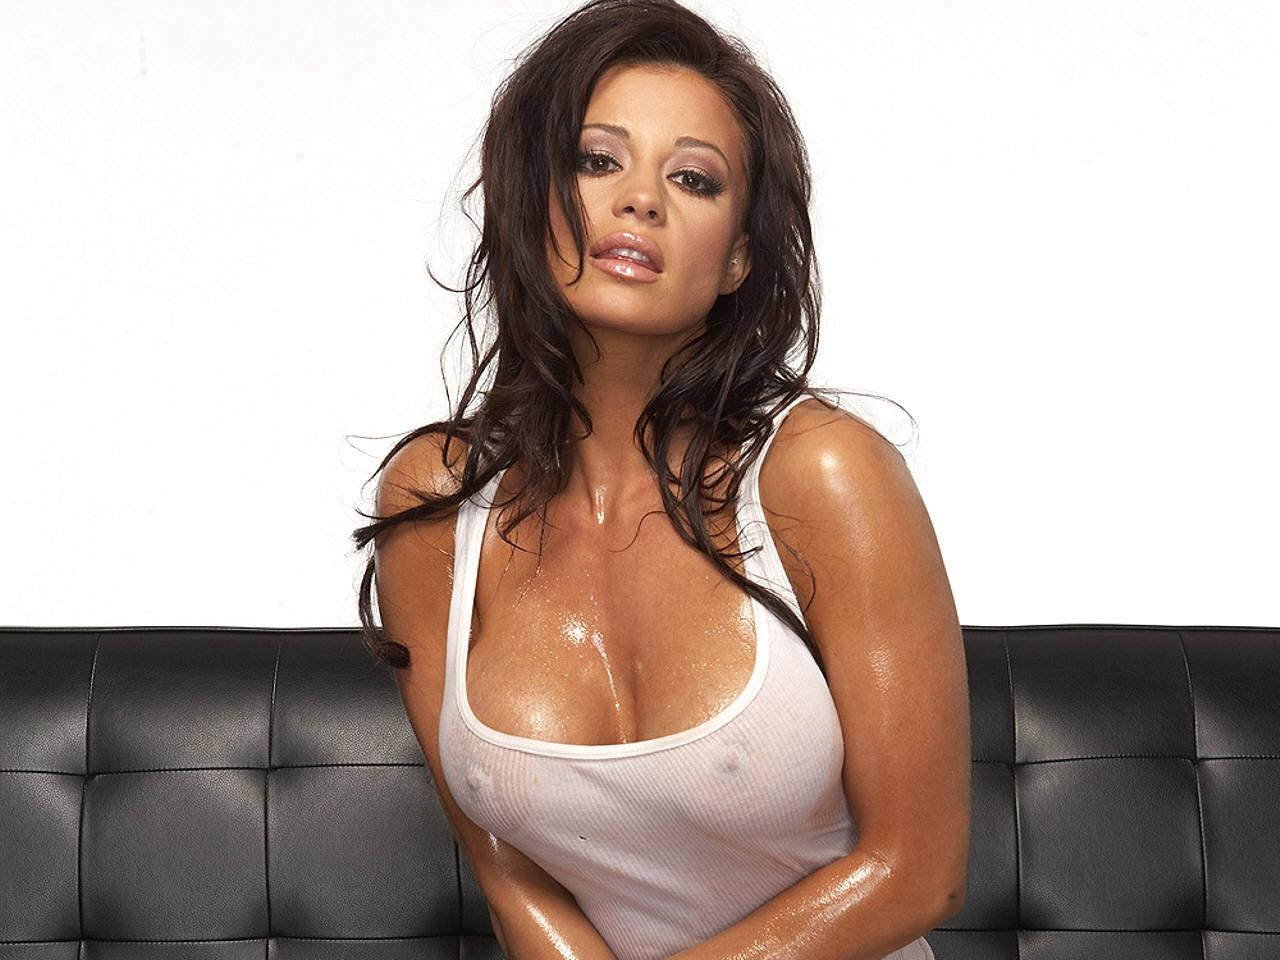 Wet candice michelle